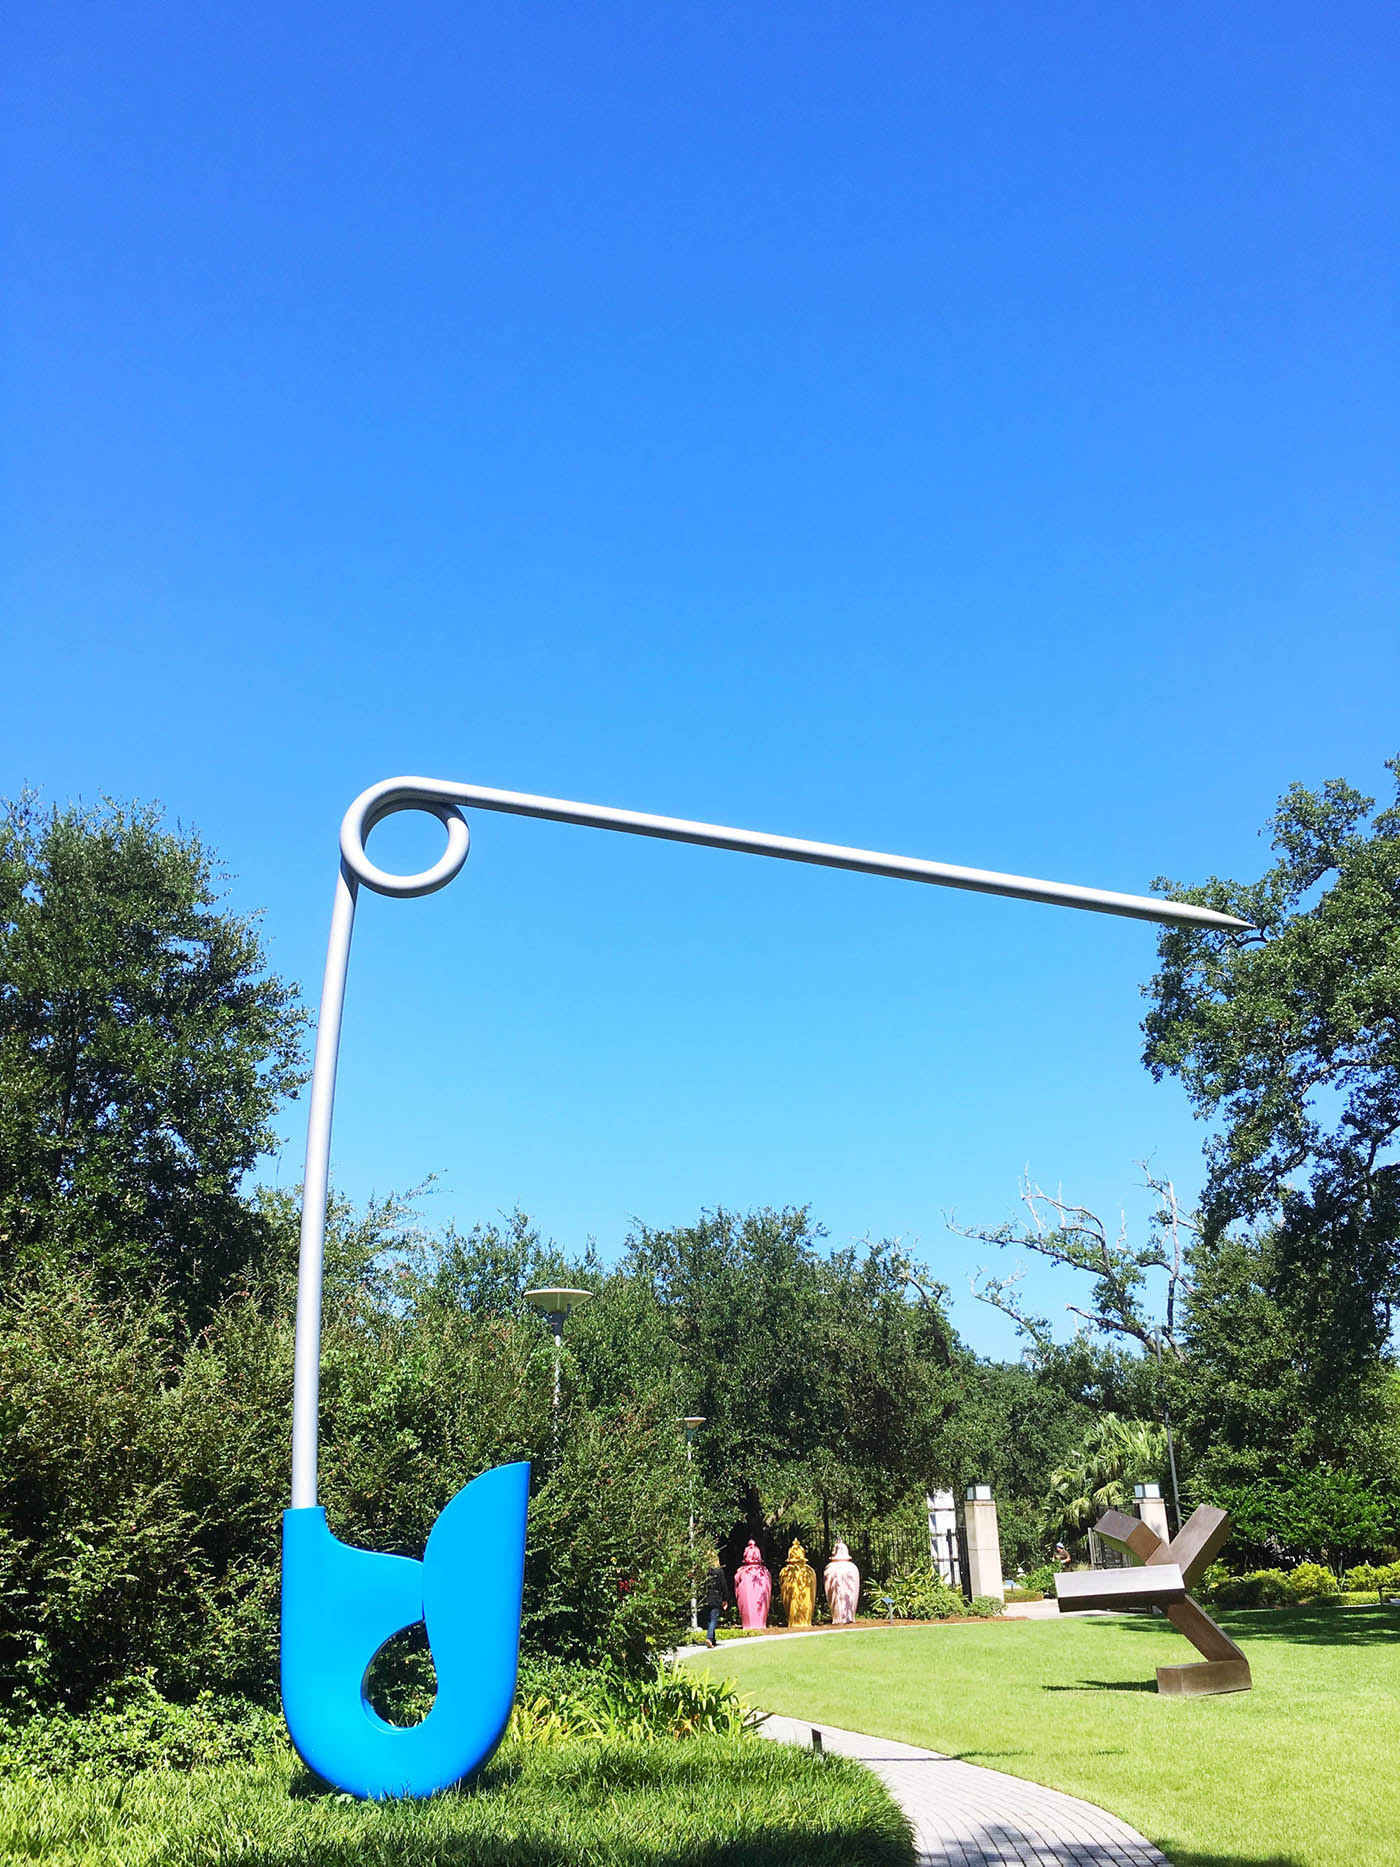 Giant Safety Pin in New Orleans, Louisiana